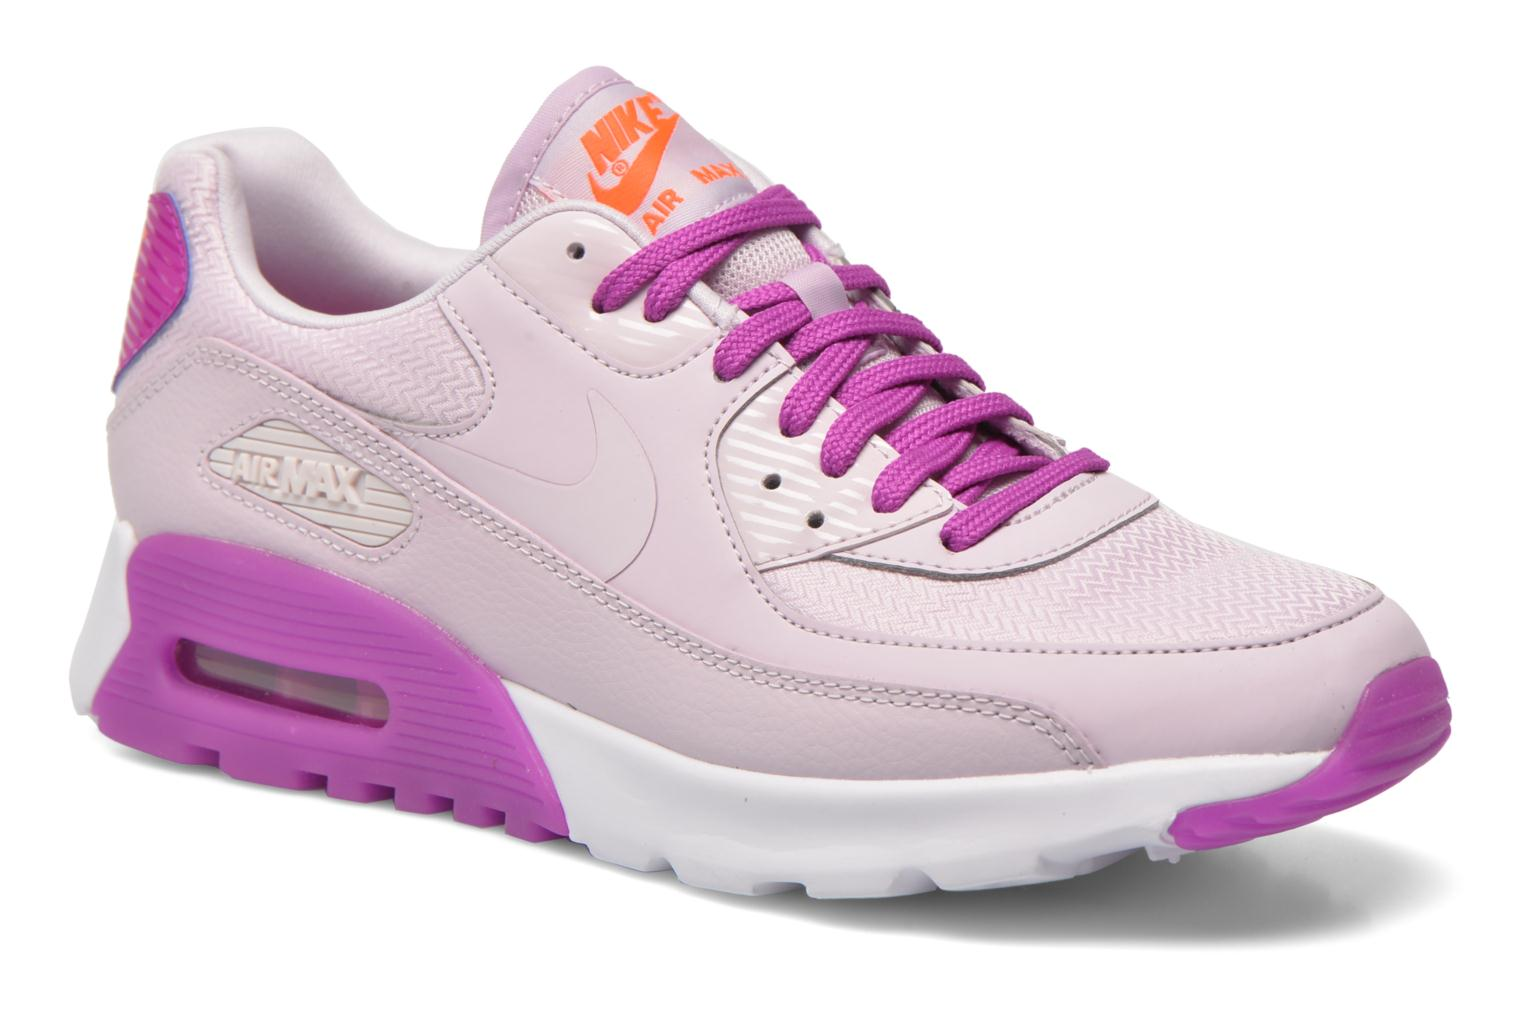 finest selection 741df 6911f nike-air max 90-dames-paars-724981-500-paarse-